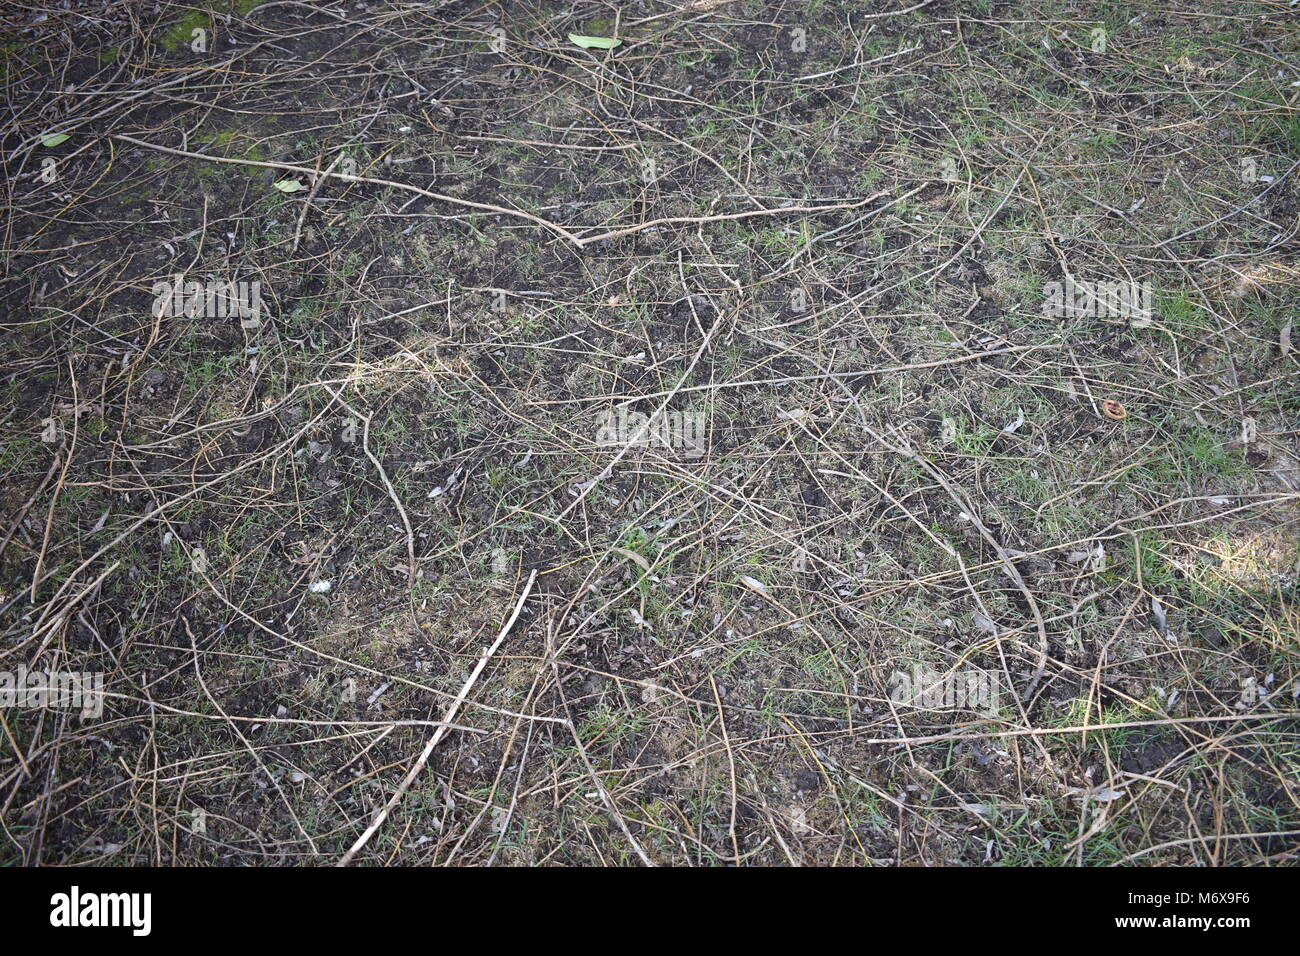 Randomly spread pile of twigs laying on the ground in the shade of a tree, useful as background Stock Photo